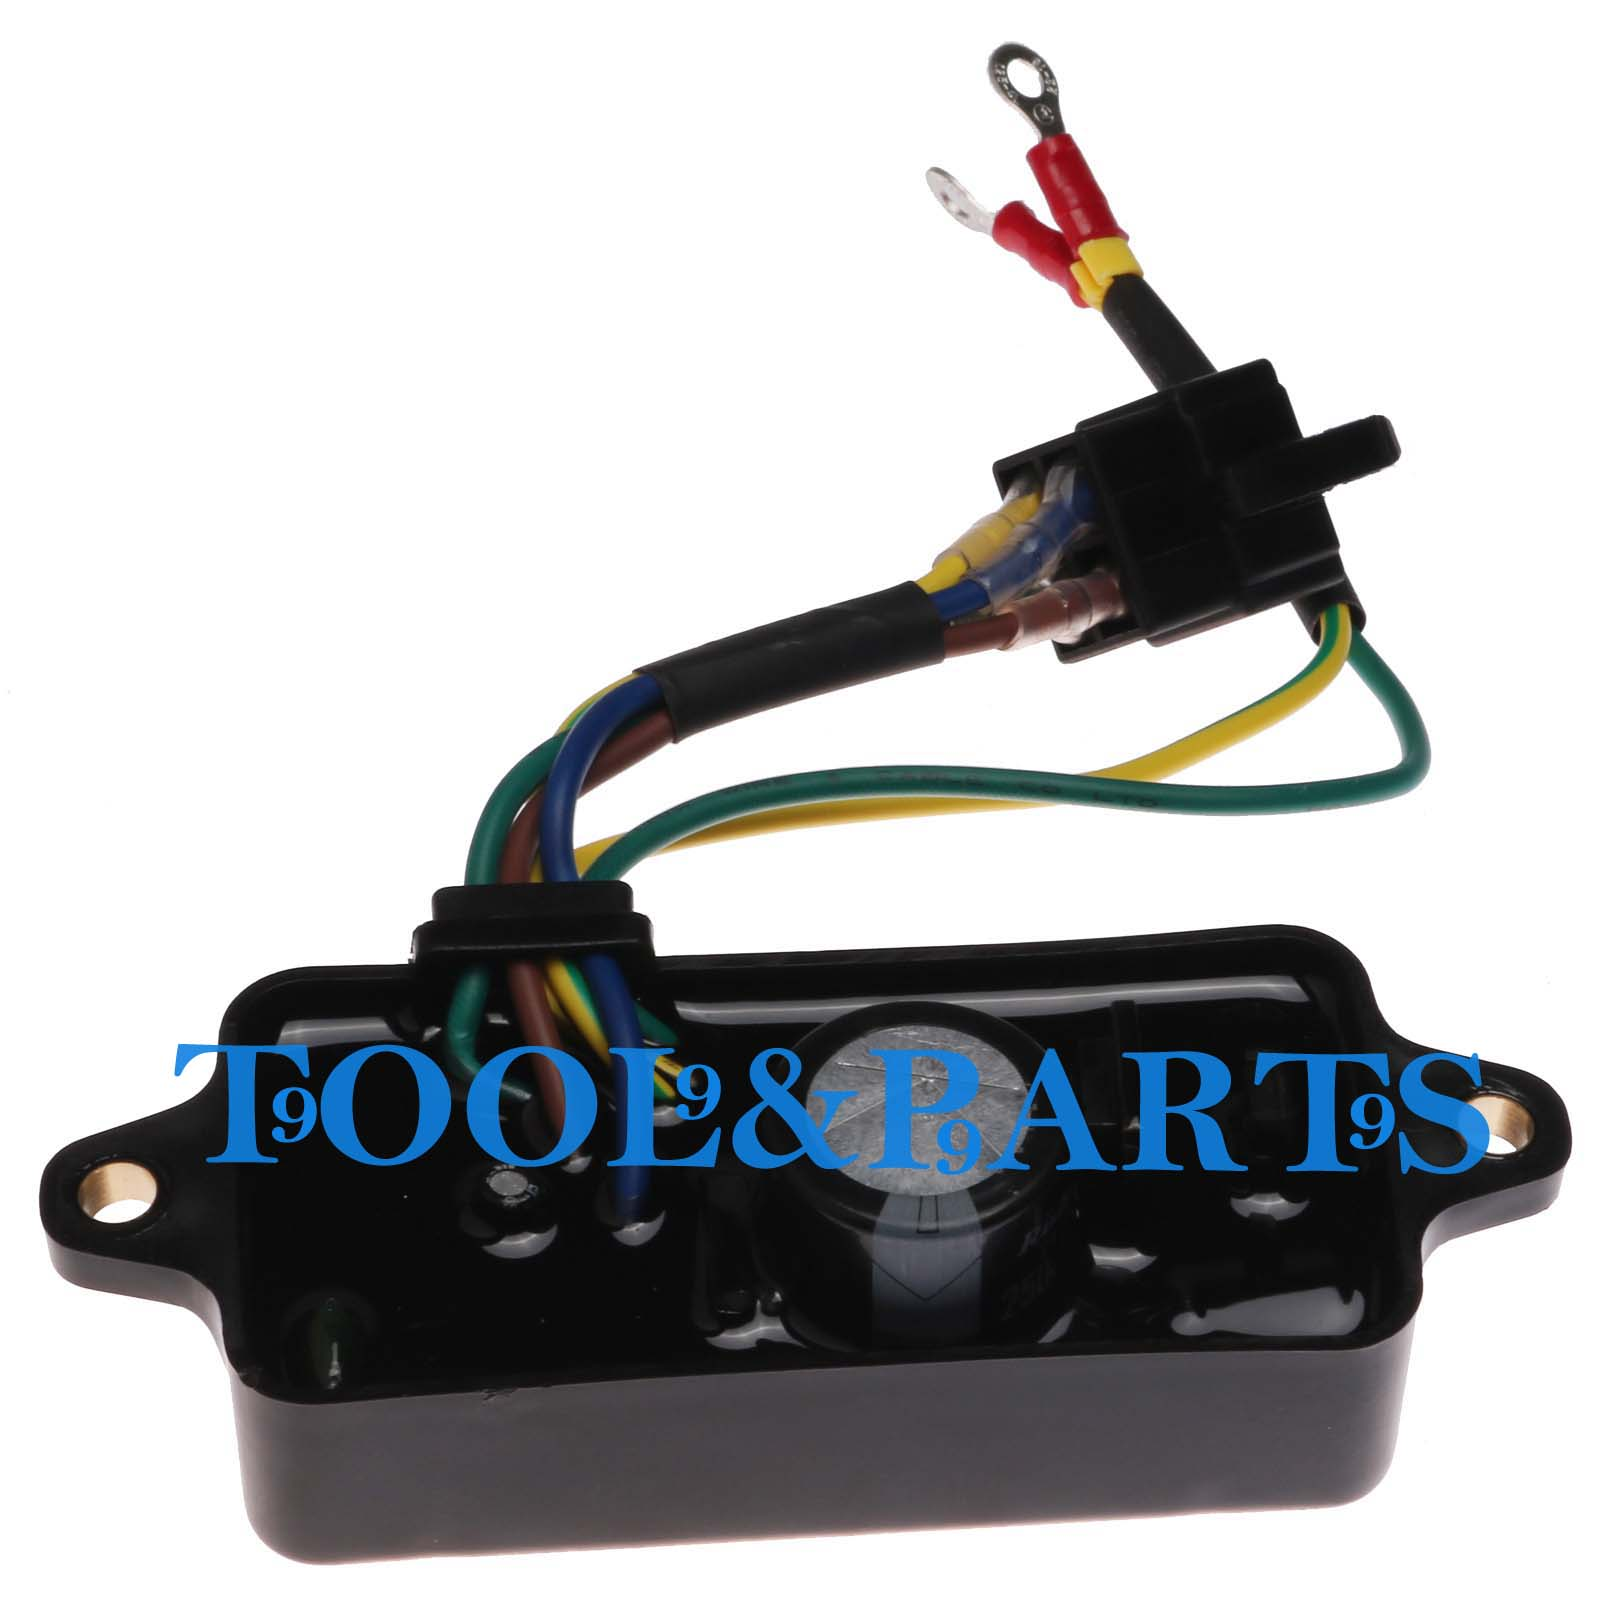 voltage regulator avr 5 5kw 6 5kw for kubota ae6500 av6500 av5500b rh ebay com Kubota Wiring Diagram PDF Kubota RTV 900 Wiring Diagram